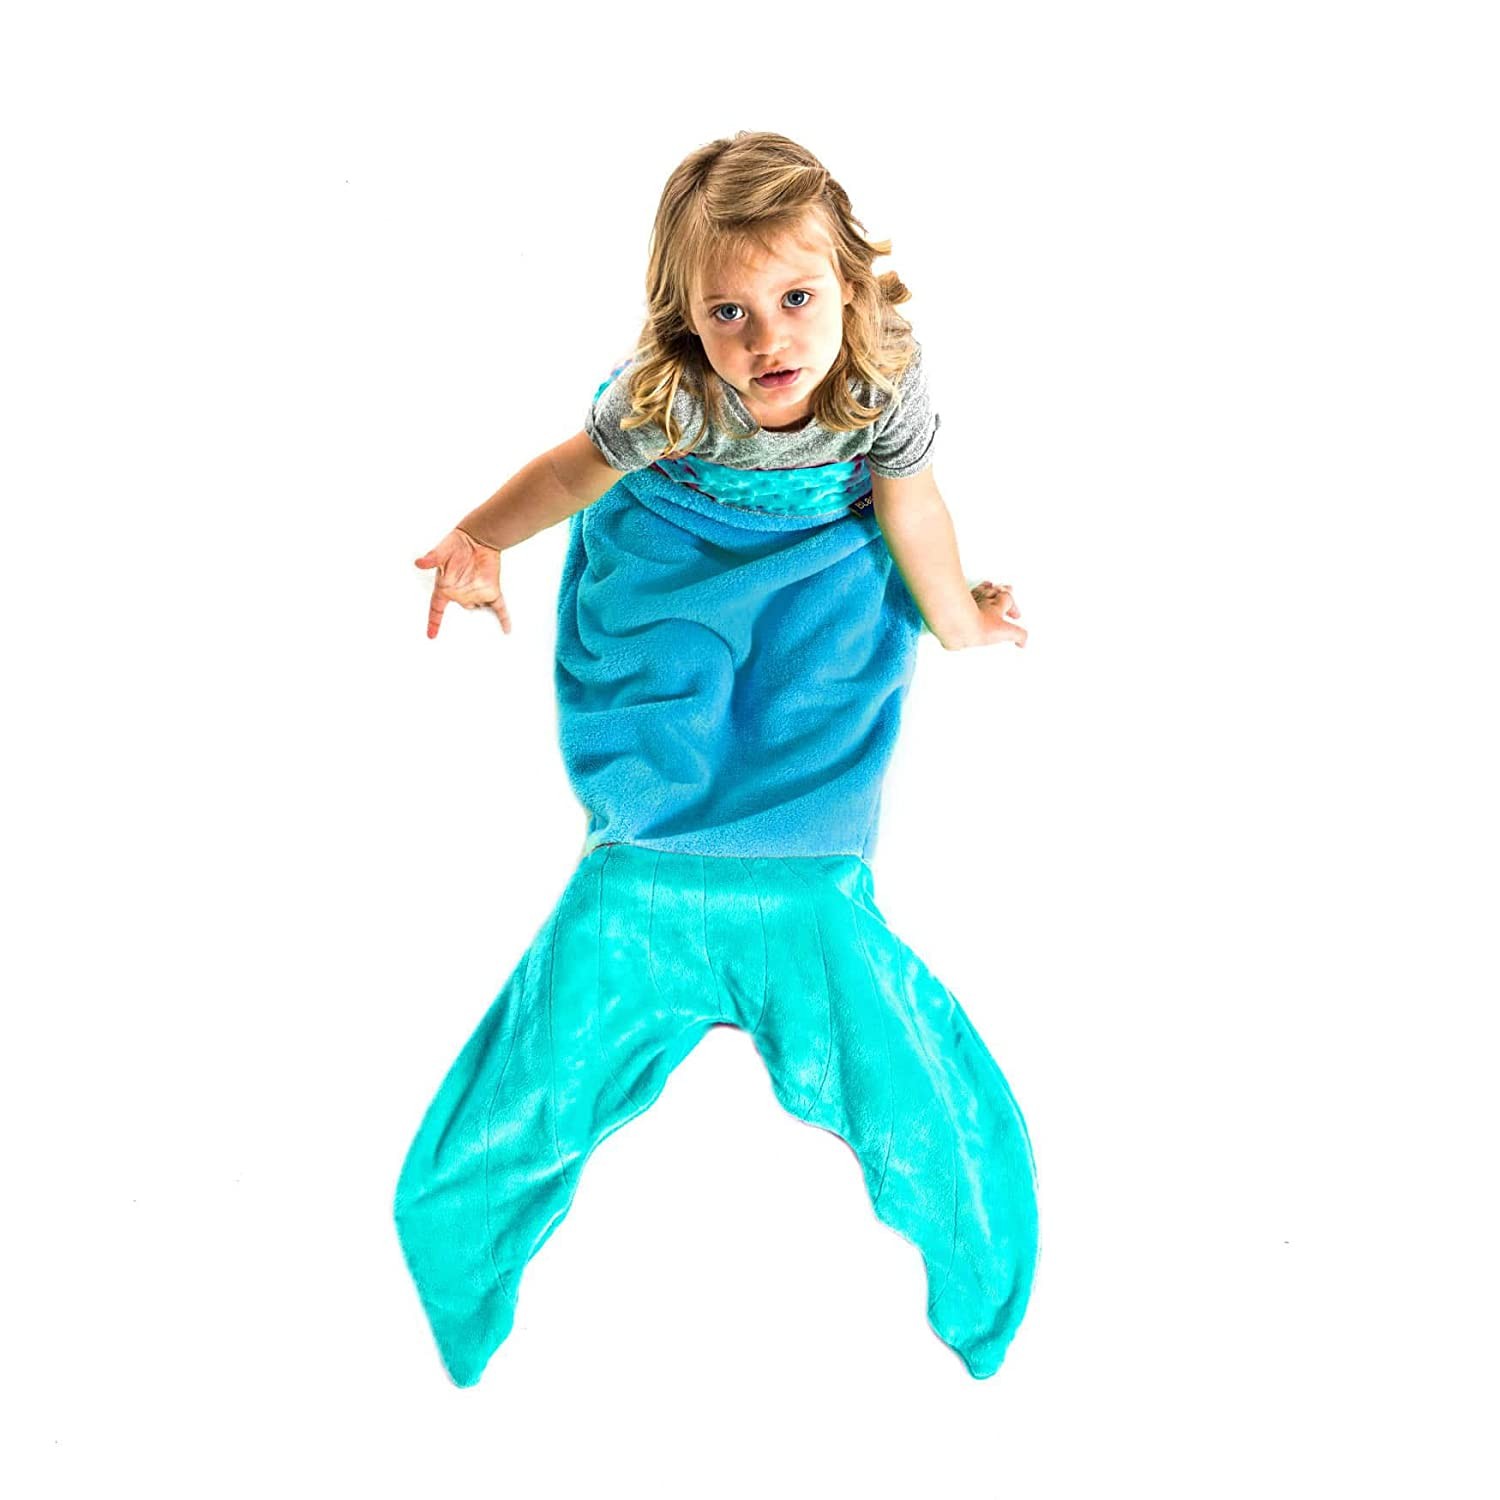 Blankie Tails Teal Mermaid Blanket for Toddlers - Toddler Fleece Blanket that Lets Feet Fit Into the Tail - Perfect Teal Toddler Blanket for Girls BT0201